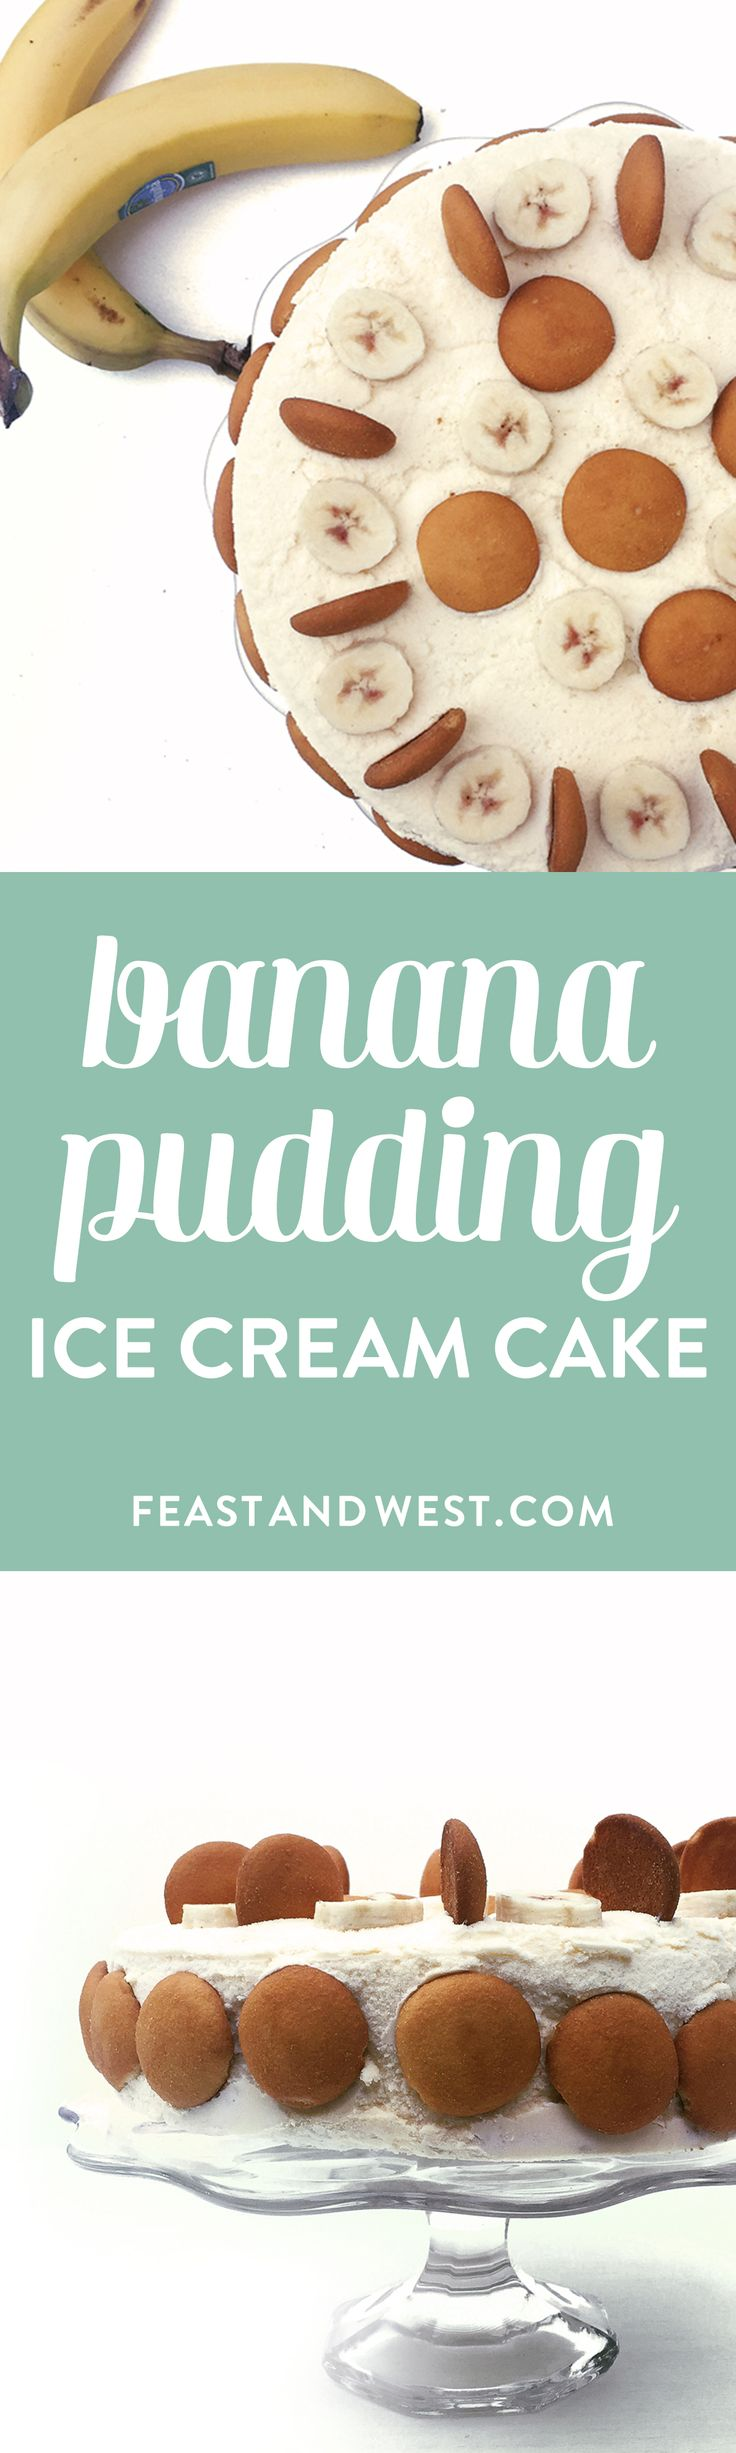 Banana Pudding Ice Cream Cake is a winner for any summer barbecue or party! (via feastandwest.com)